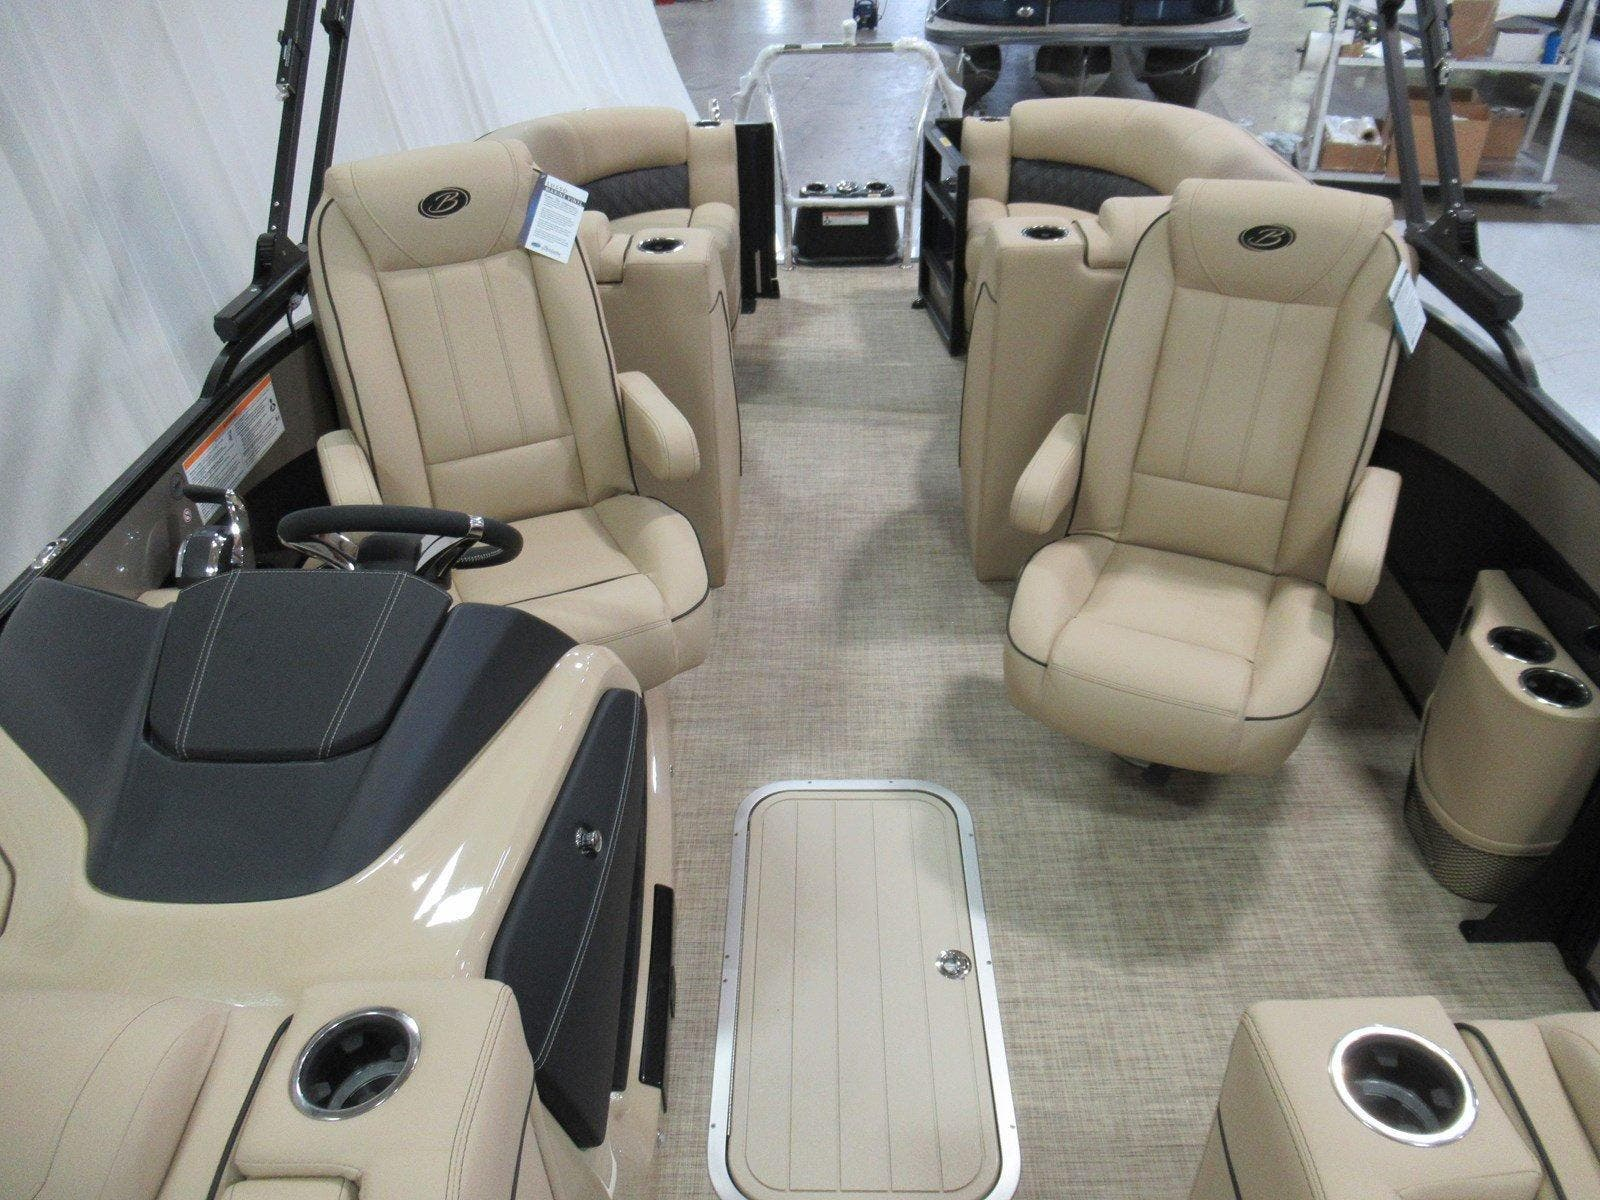 2020 Barletta boat for sale, model of the boat is L23qc & Image # 7 of 13